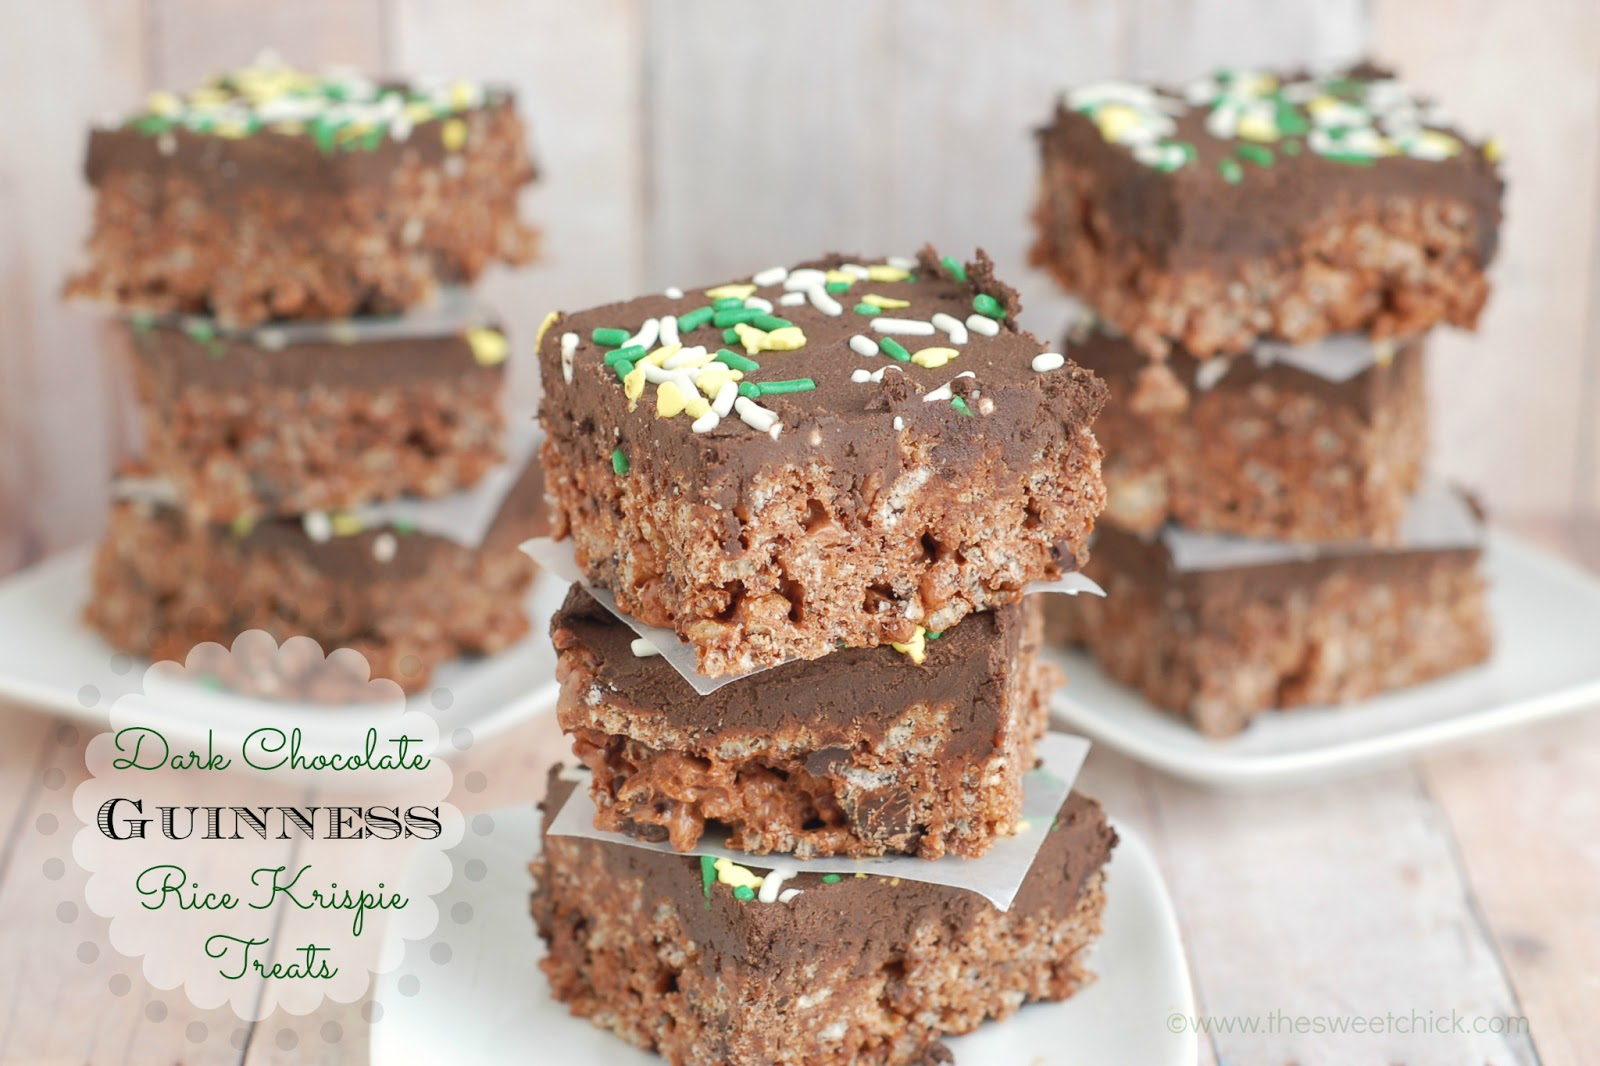 The Sweet Chick: Dark Chocolate Guinness Rice Krispie Treats